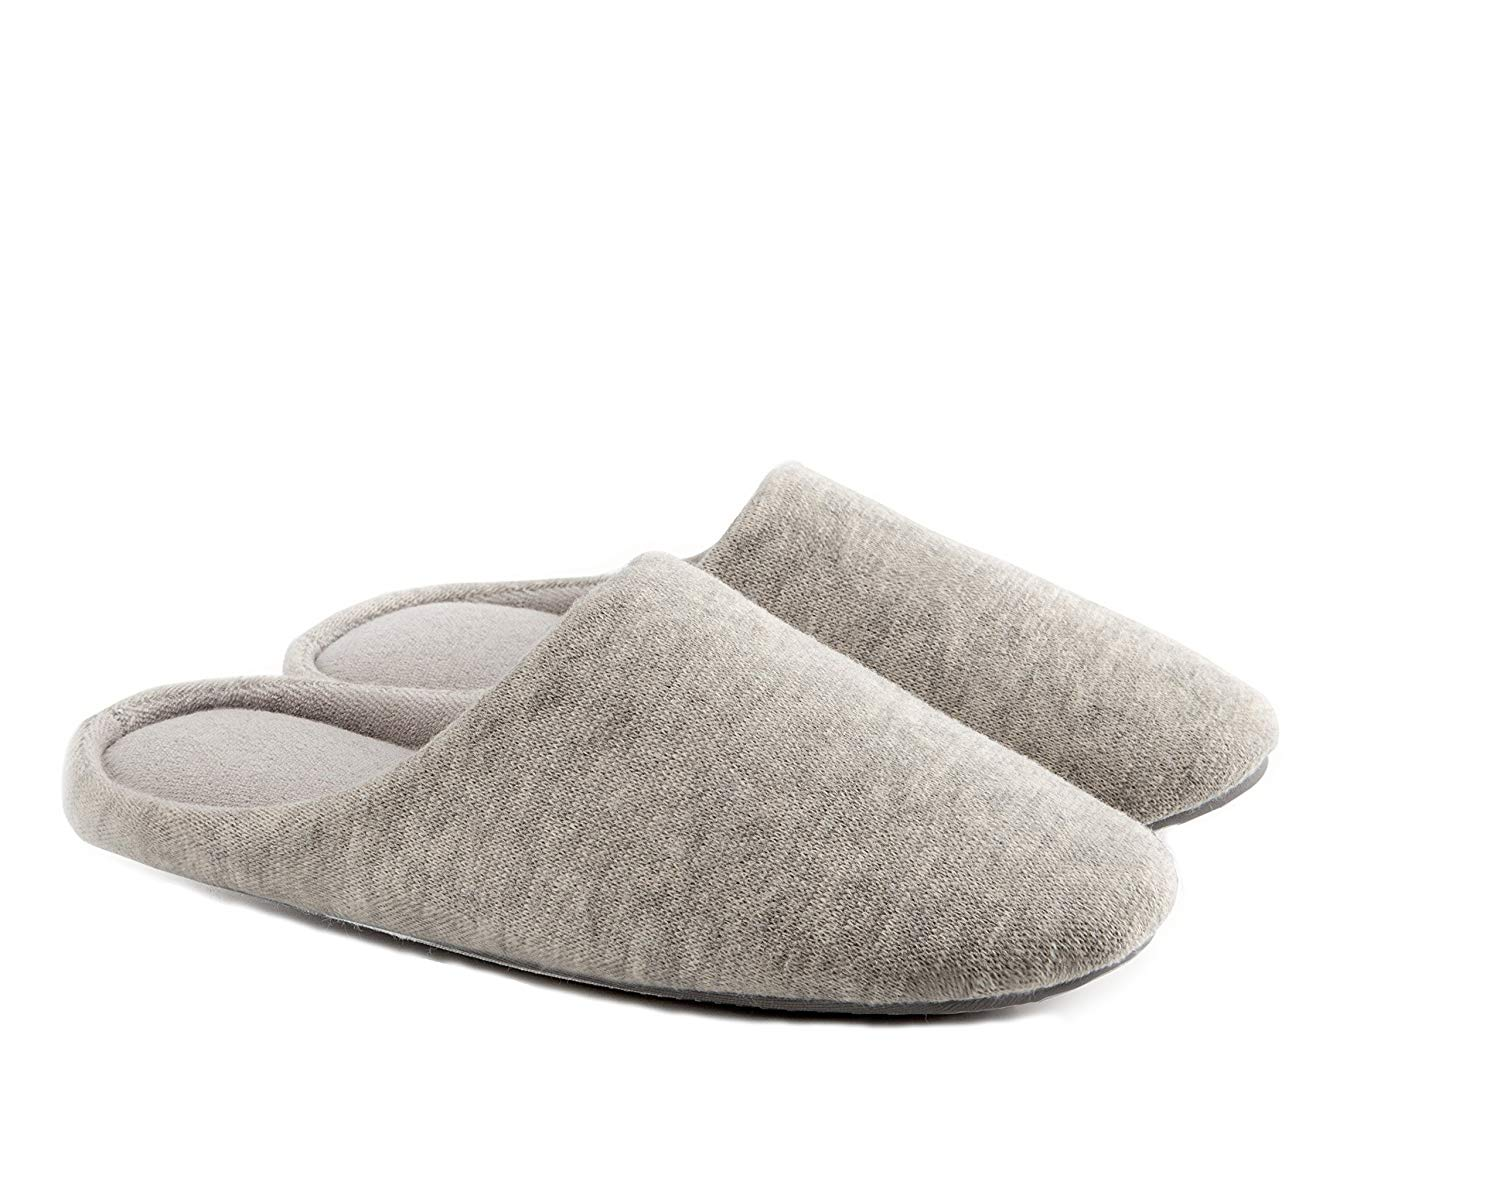 c9f85a70d Get Quotations · YanYeeh Slippers for Women Womens Slippers Pink Slippers  House Slippers Bedroom Indoor Outdoor Arch Support Slipper